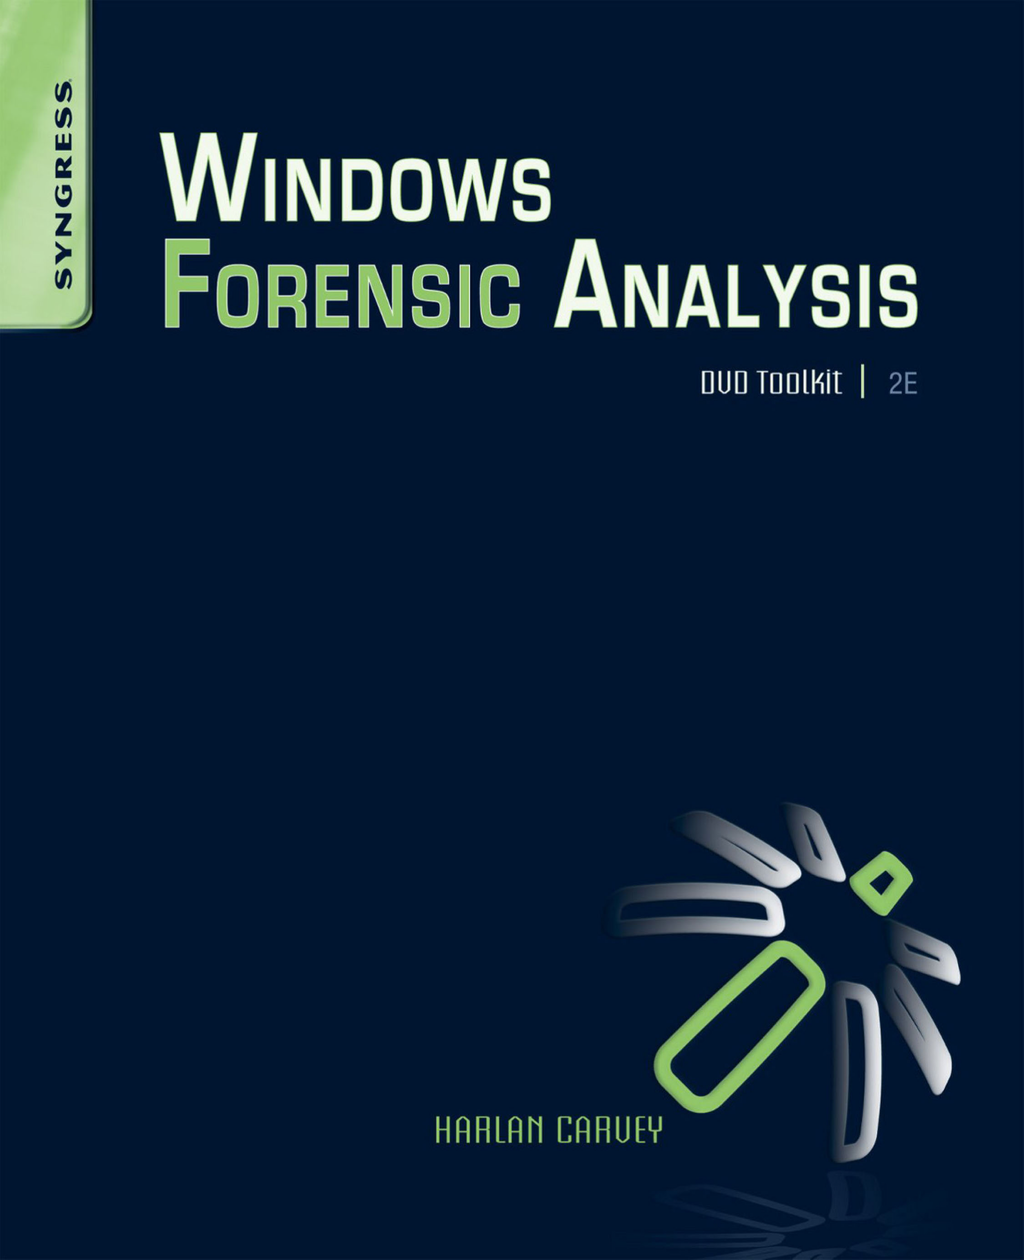 Windows Forensic Analysis DVD Toolkit By: Harlan Carvey